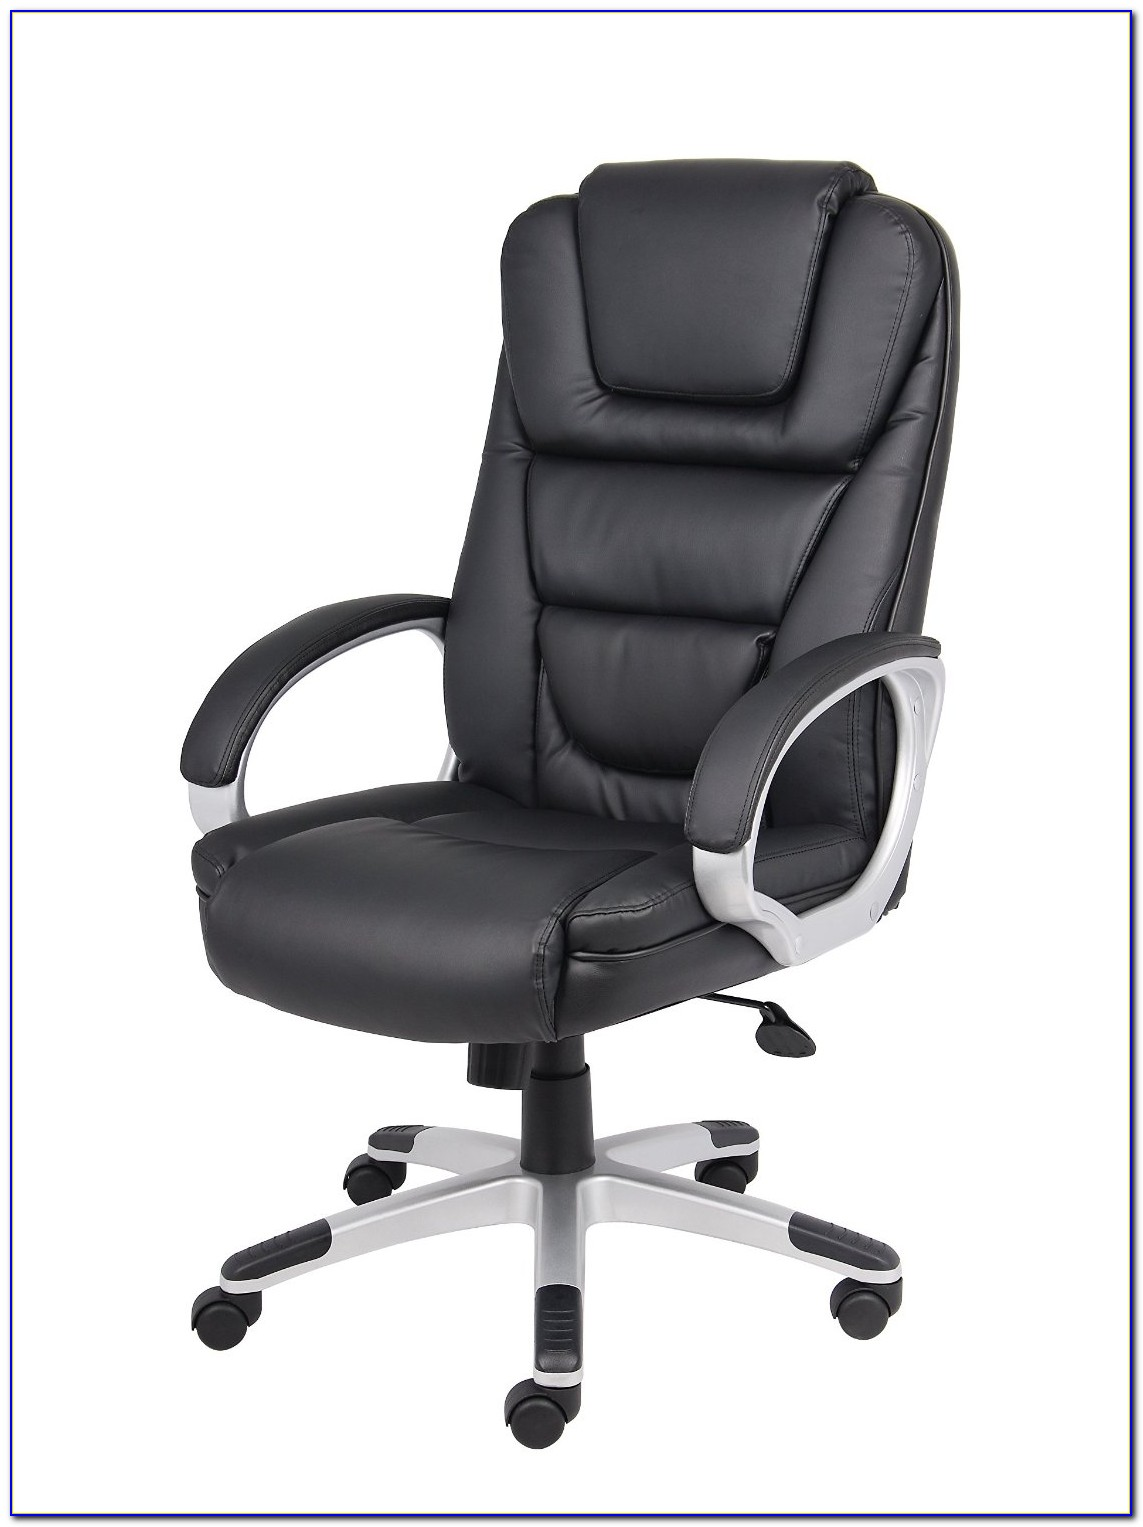 Best Desk Chair For Back Pain 2015